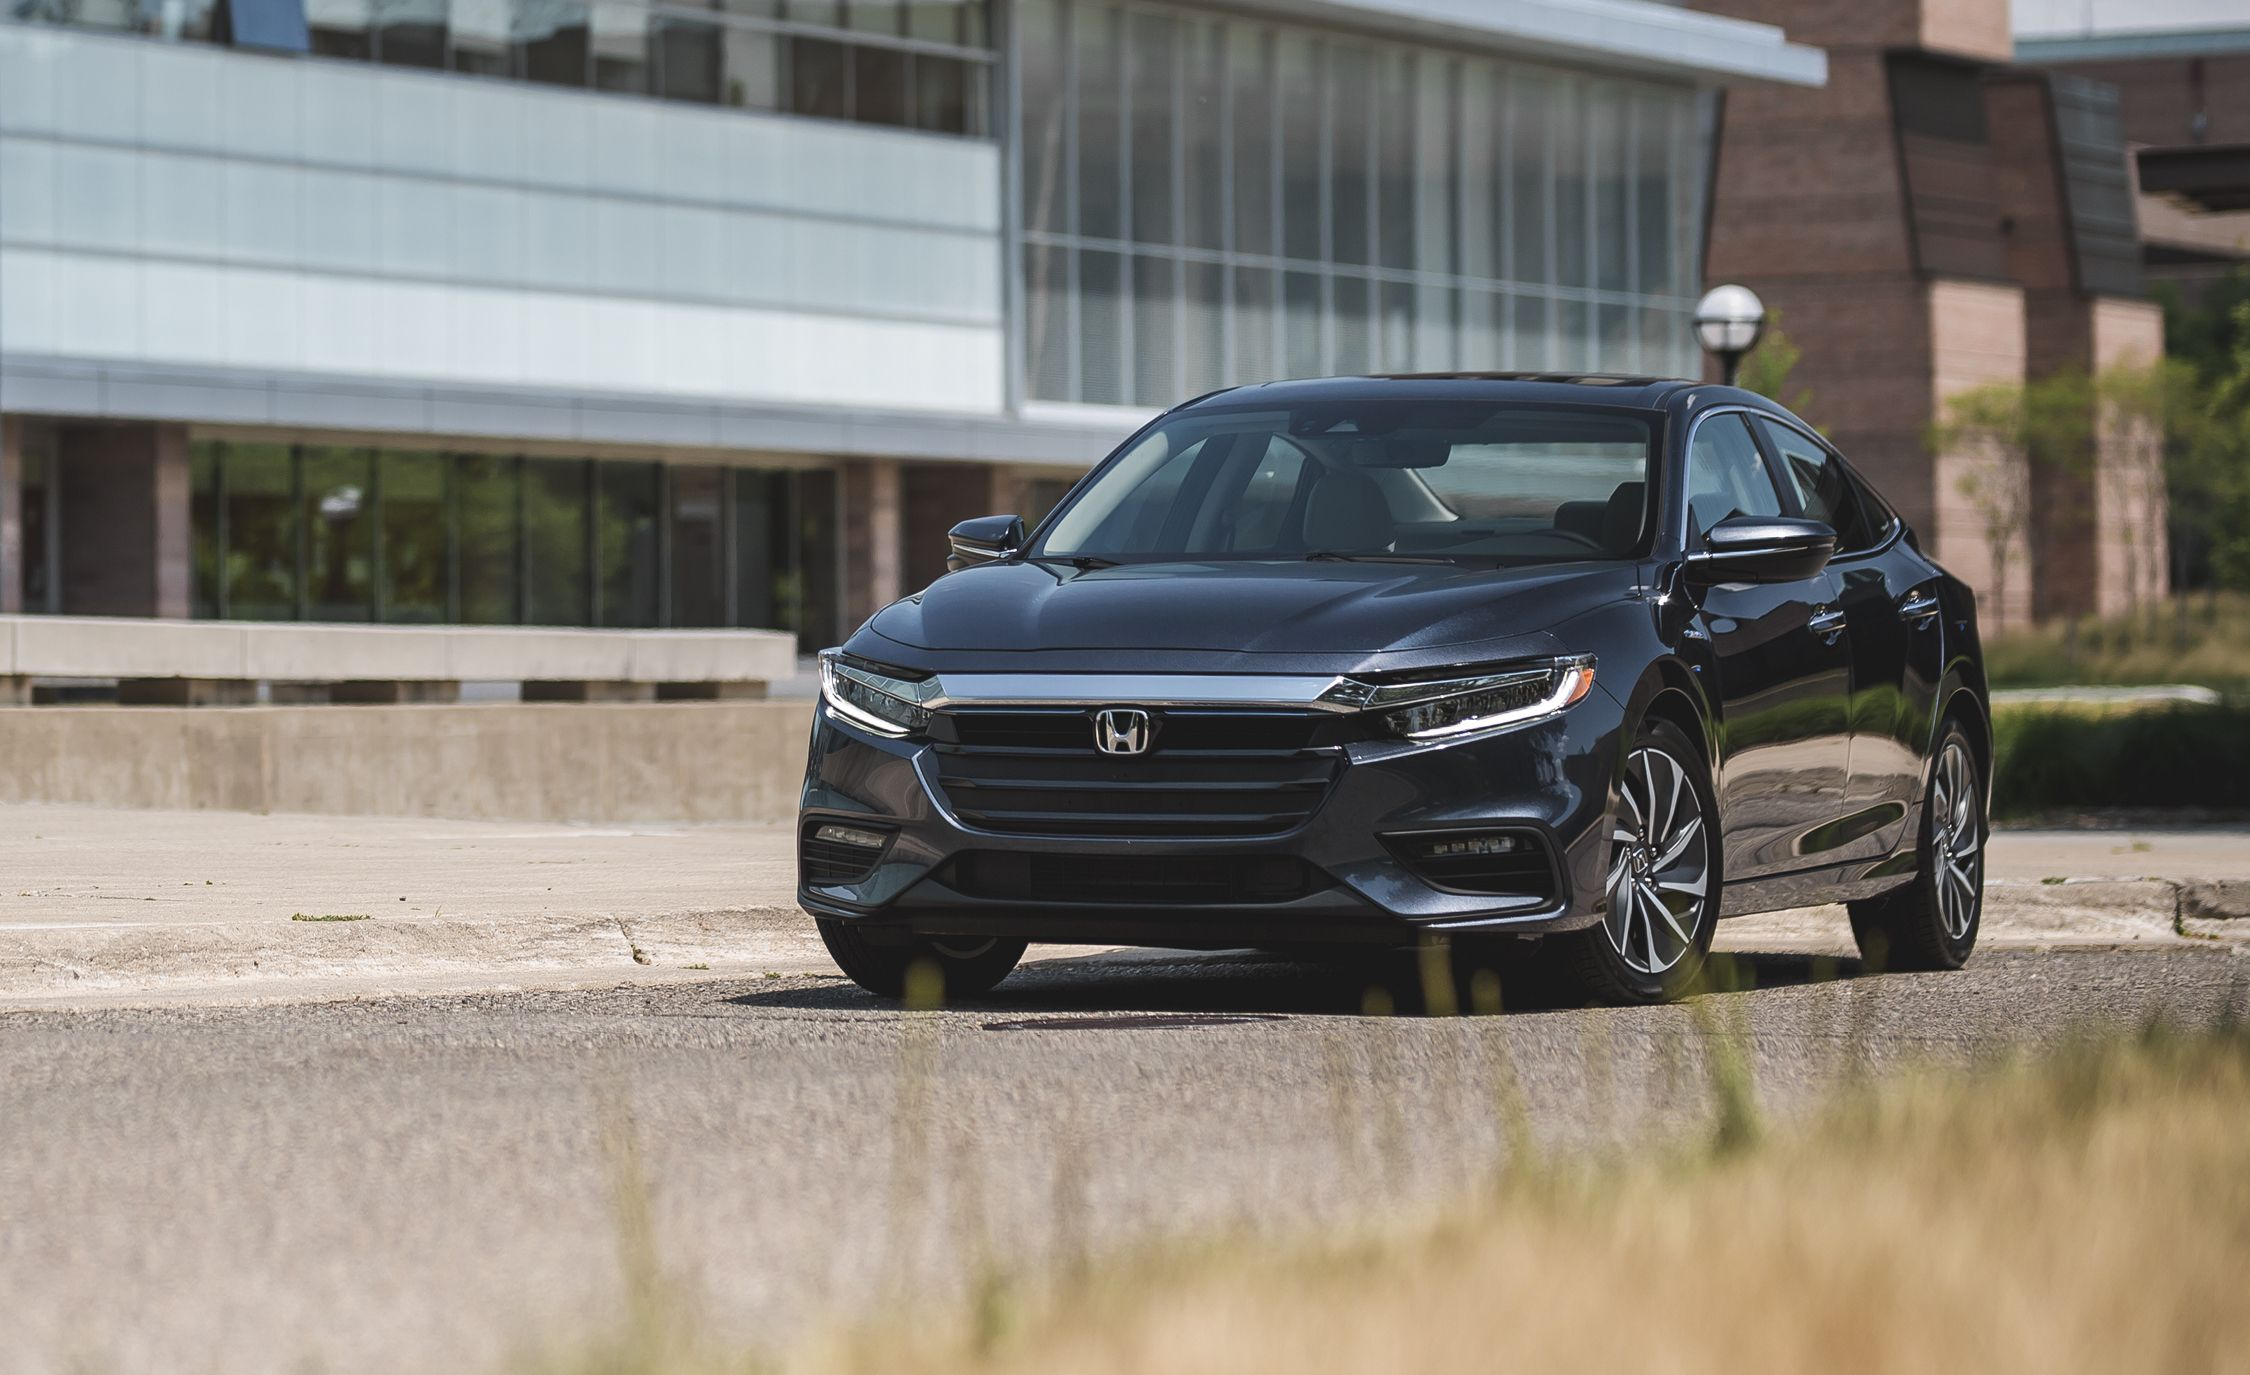 2019 Honda Insight: A Civic with Better Gas Mileage